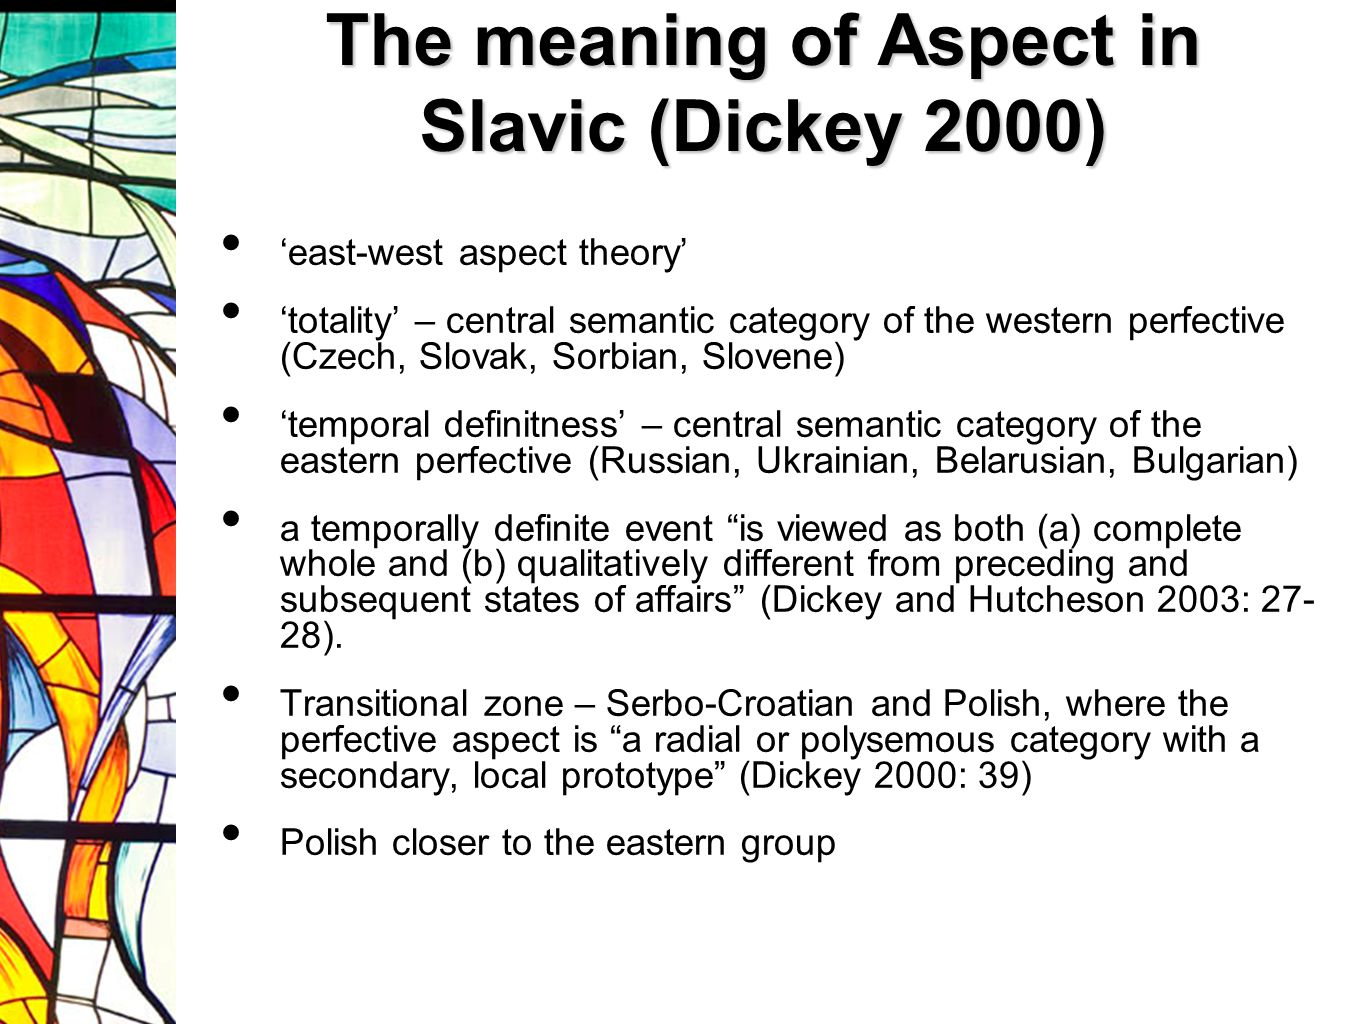 The meaning of Aspect in Slavic (Dickey 2000) 'east-west aspect theory' 'totality' – central semantic category of the western perfective (Czech, Slovak, Sorbian, Slovene) 'temporal definitness' – central semantic category of the eastern perfective (Russian, Ukrainian, Belarusian, Bulgarian) a temporally definite event is viewed as both (a) complete whole and (b) qualitatively different from preceding and subsequent states of affairs (Dickey and Hutcheson 2003: 27- 28).